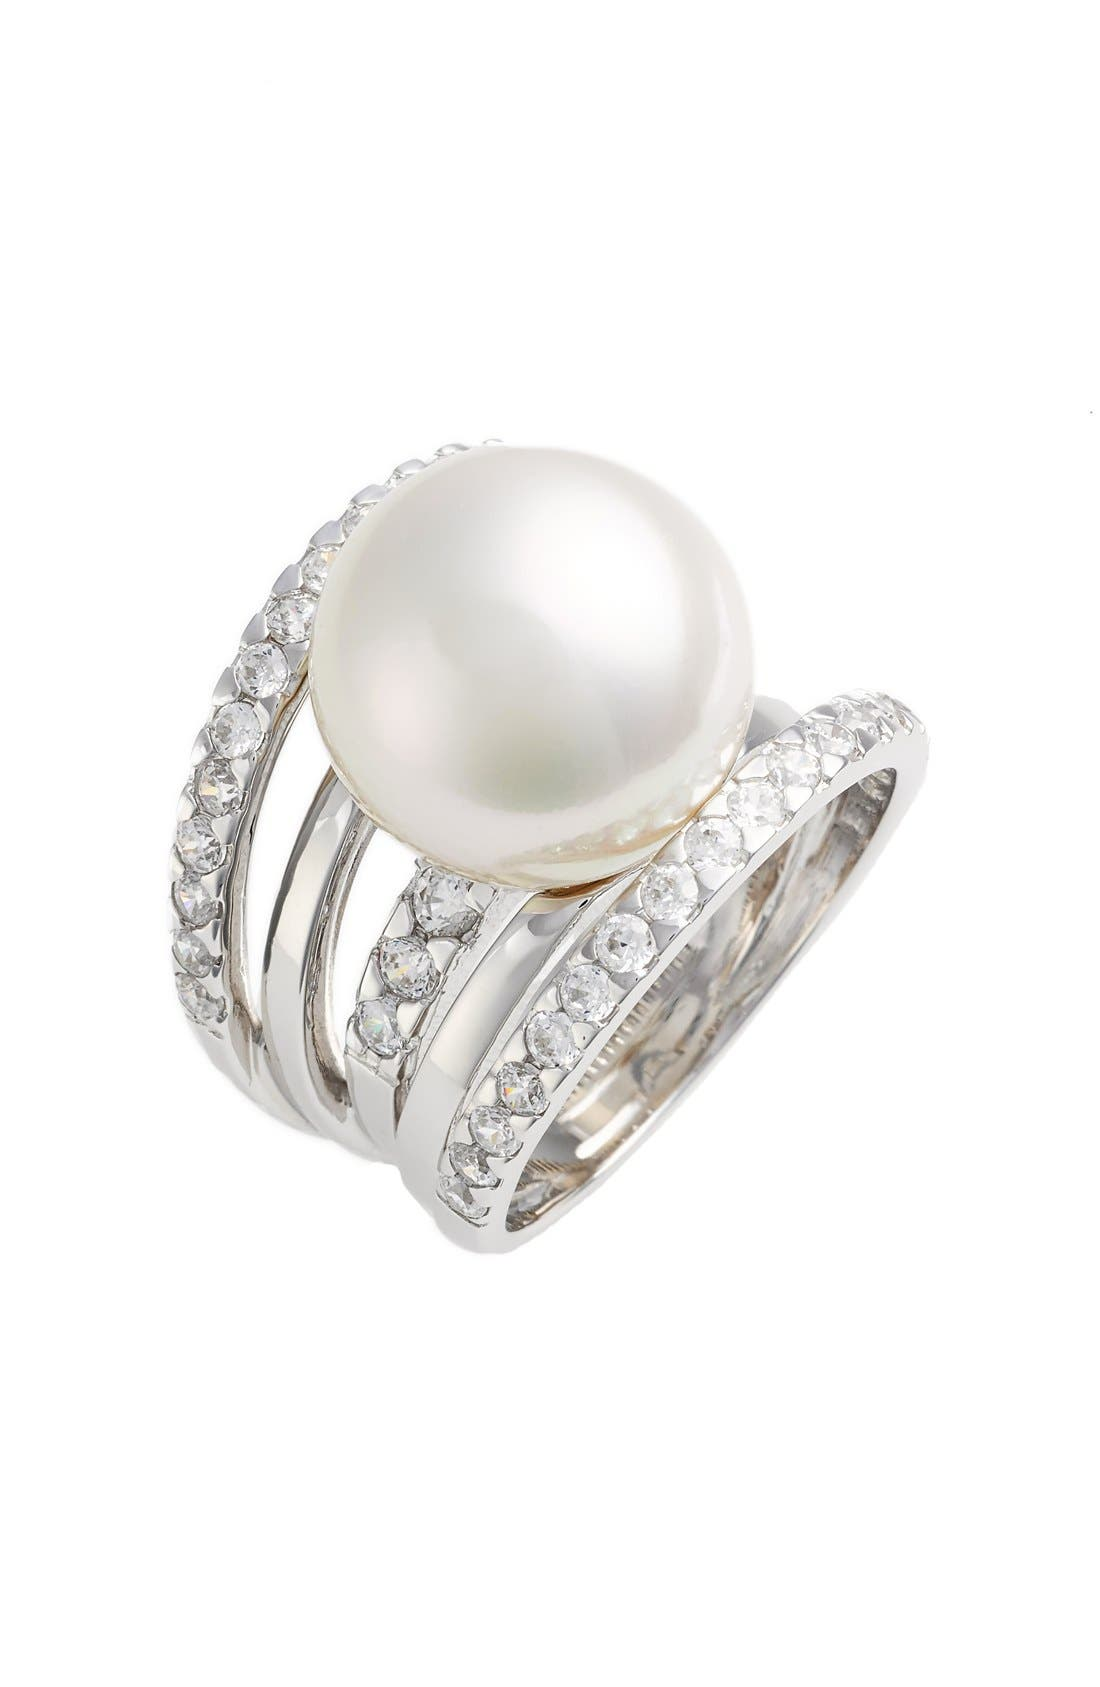 16mm Round Simulated Pearl Cubic Zirconia Ring,                             Main thumbnail 1, color,